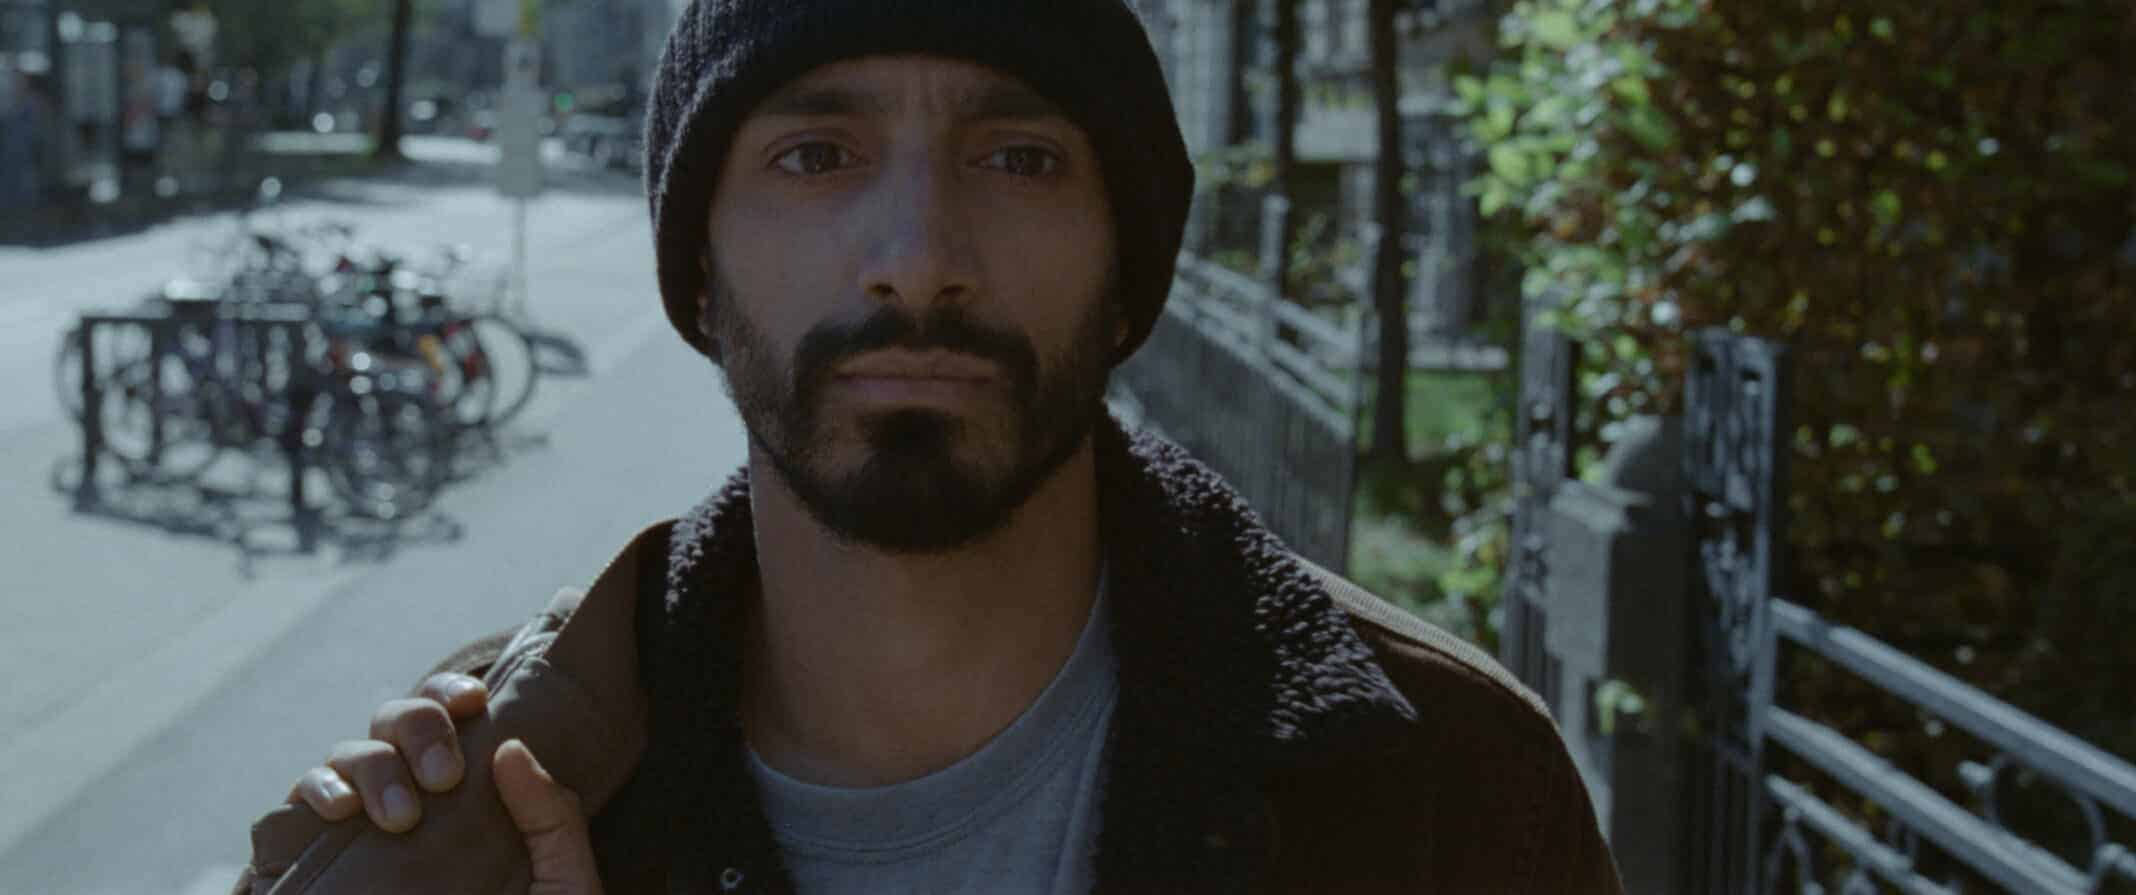 Ruben played by Riz Ahmed